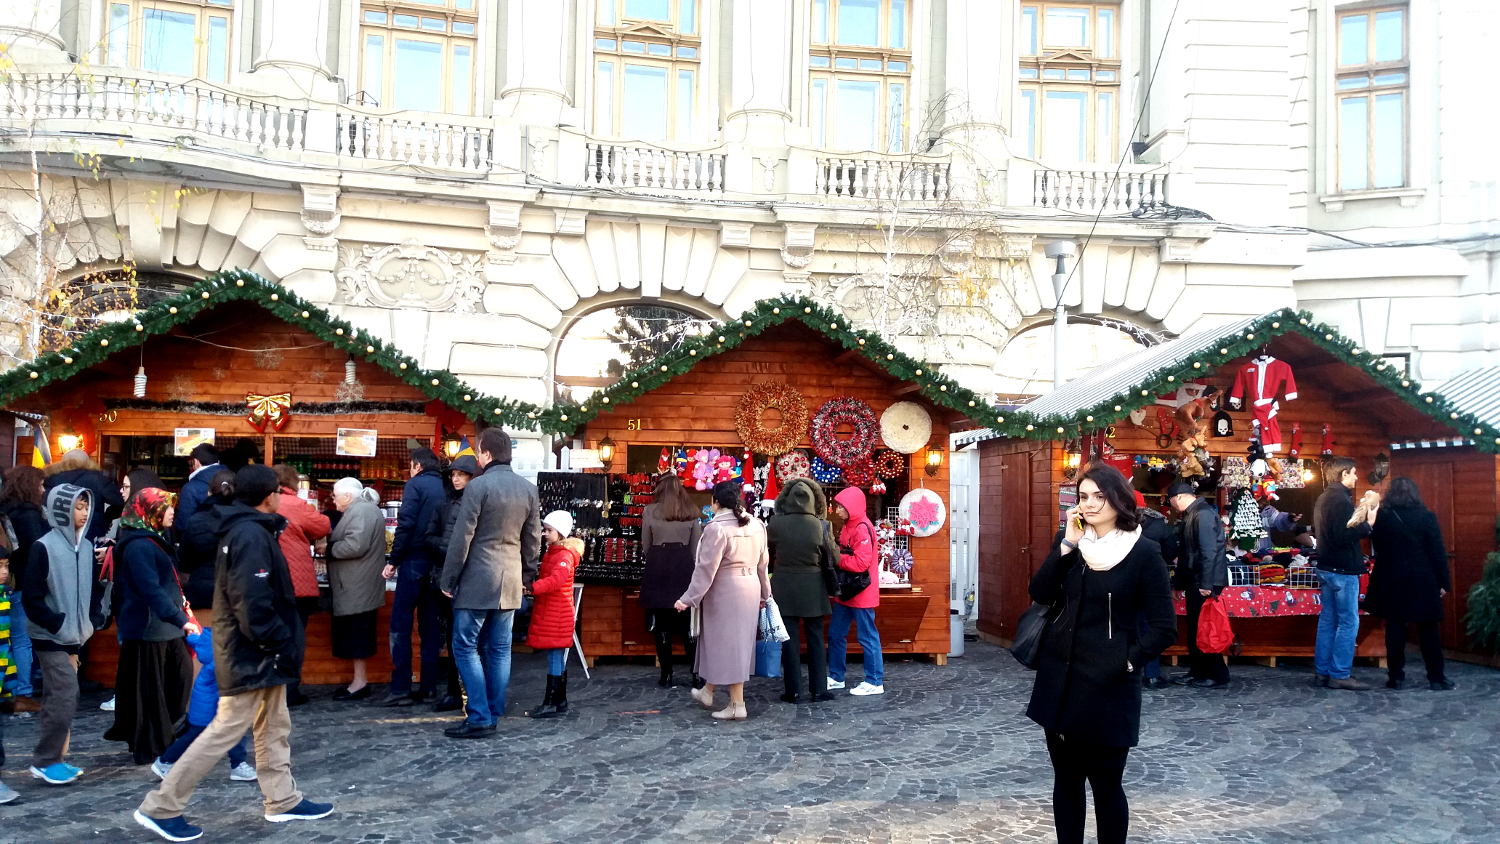 The Bucharest Christmas Market, Romania is one of the best Christmas Markets in Europe. Read the article and see the top Christmas markets in Europe. #christmas #christmasholidays #christmastrips #europemarkets #europechristmasmarkets #christmasmarkets